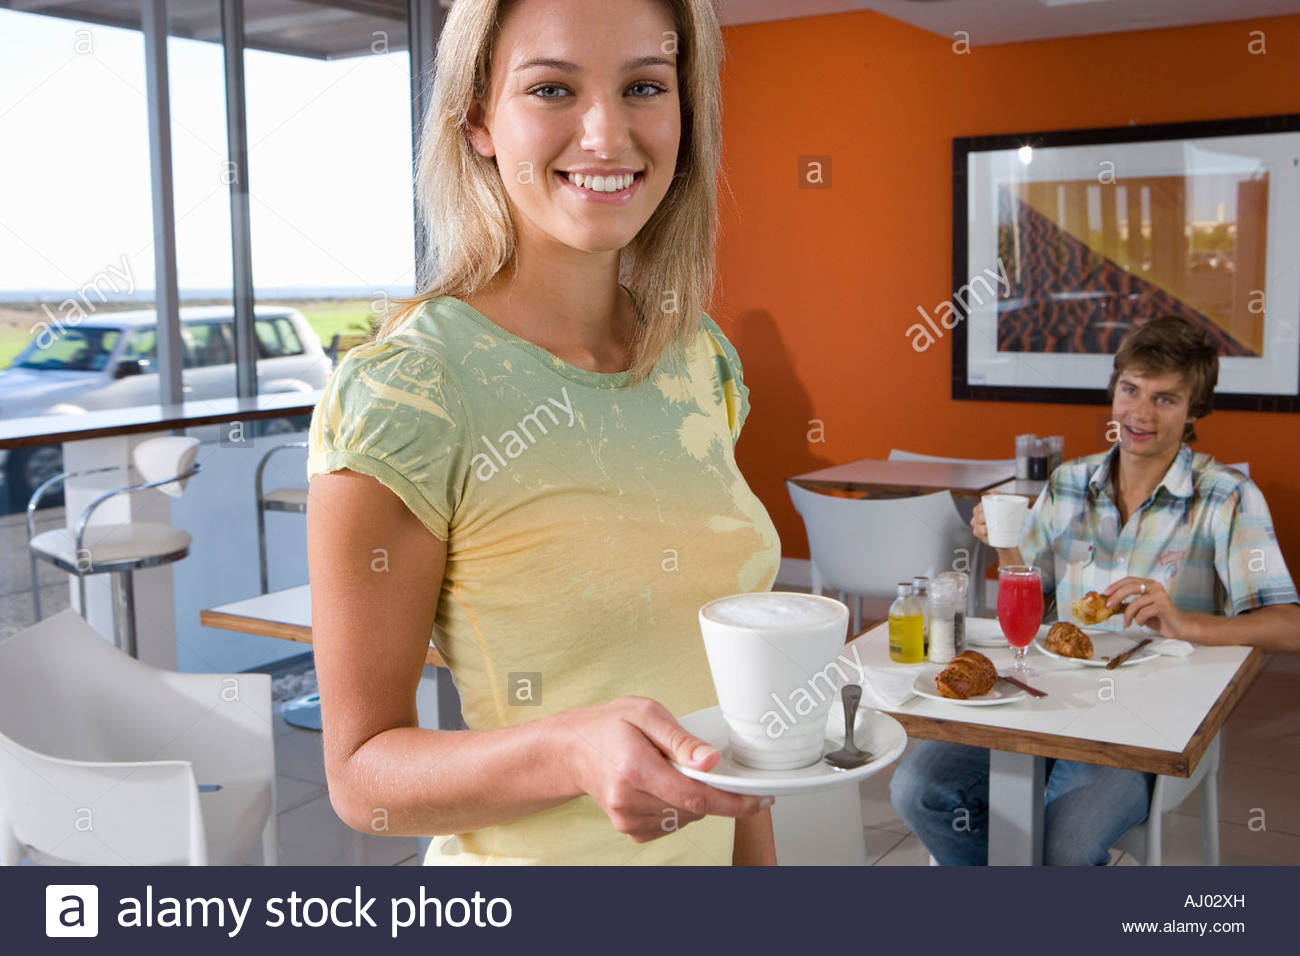 Young woman holding tea cup in cafeteria, smiling, portrait, young man smiling in background - Stock Image